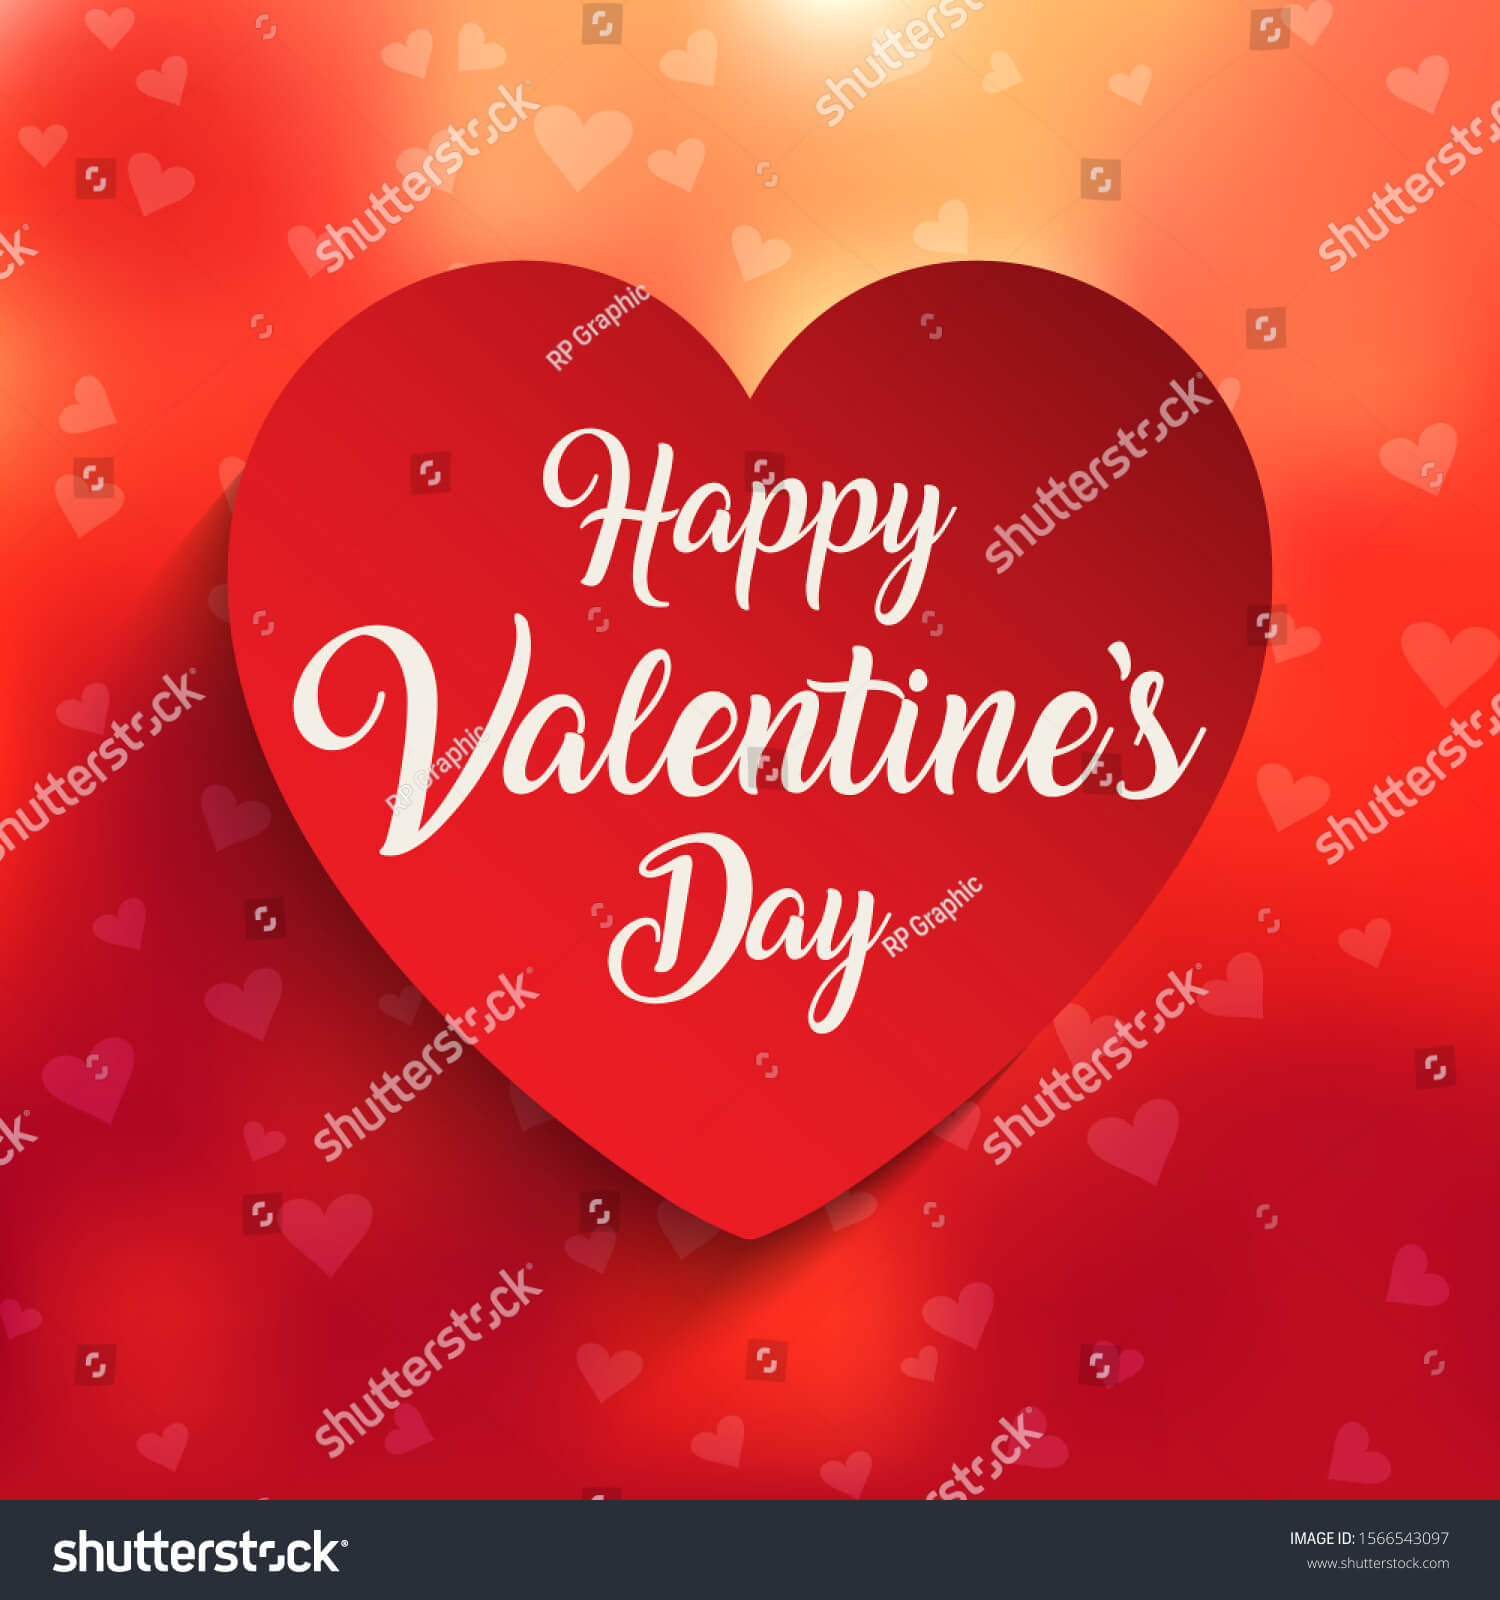 Background Happy Valentine Day trên Shutterstock